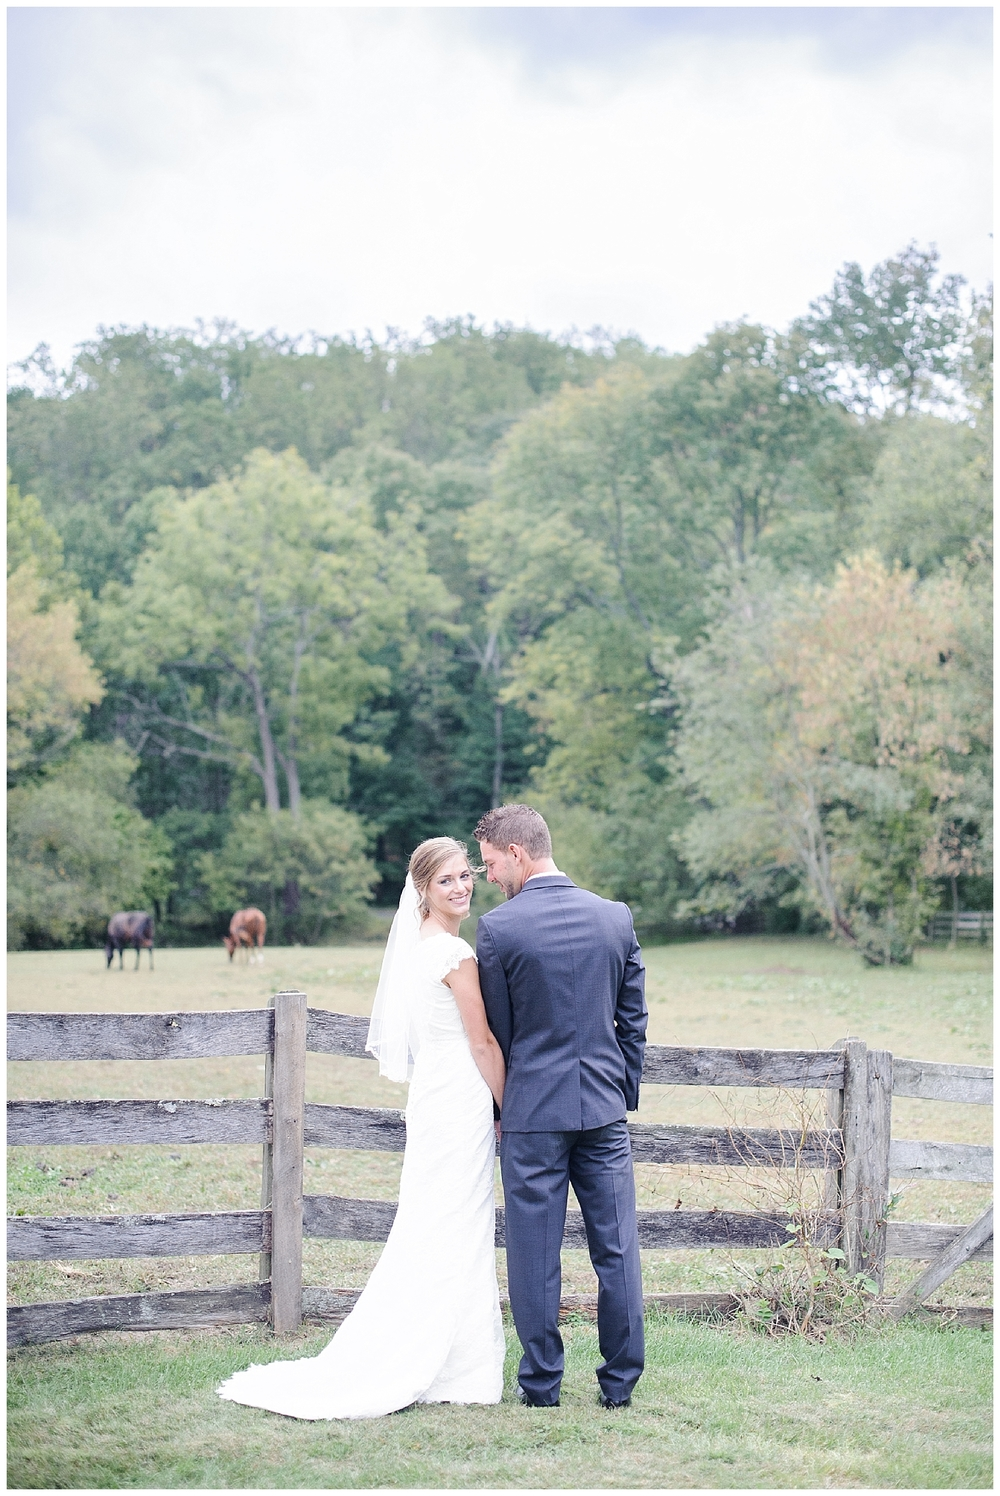 Red Oak Weddings | Intimate Backyard wedding in Lancaster, PA | Olivia Rae Photography